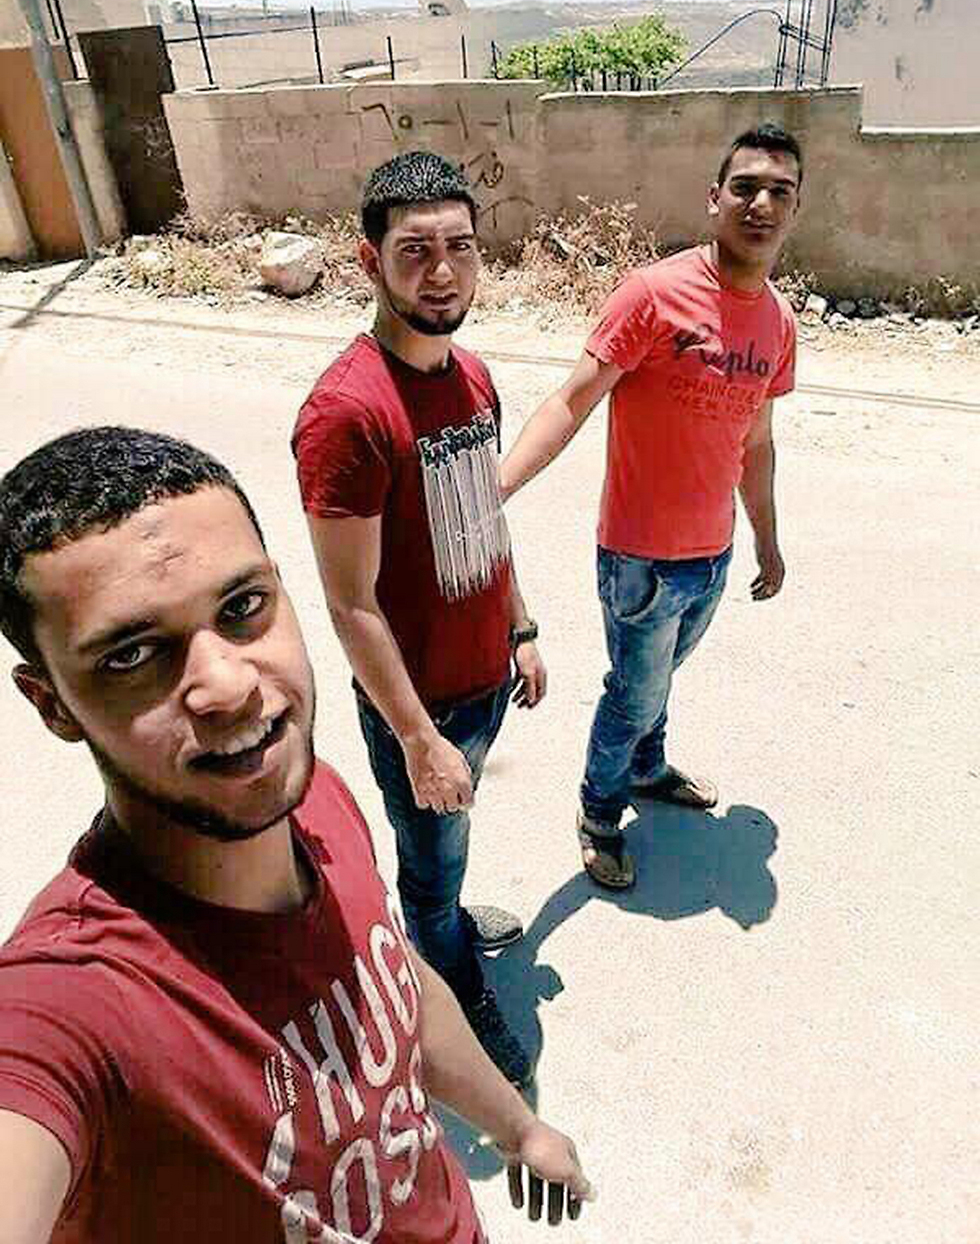 Three terrorists take a selfie before their attack